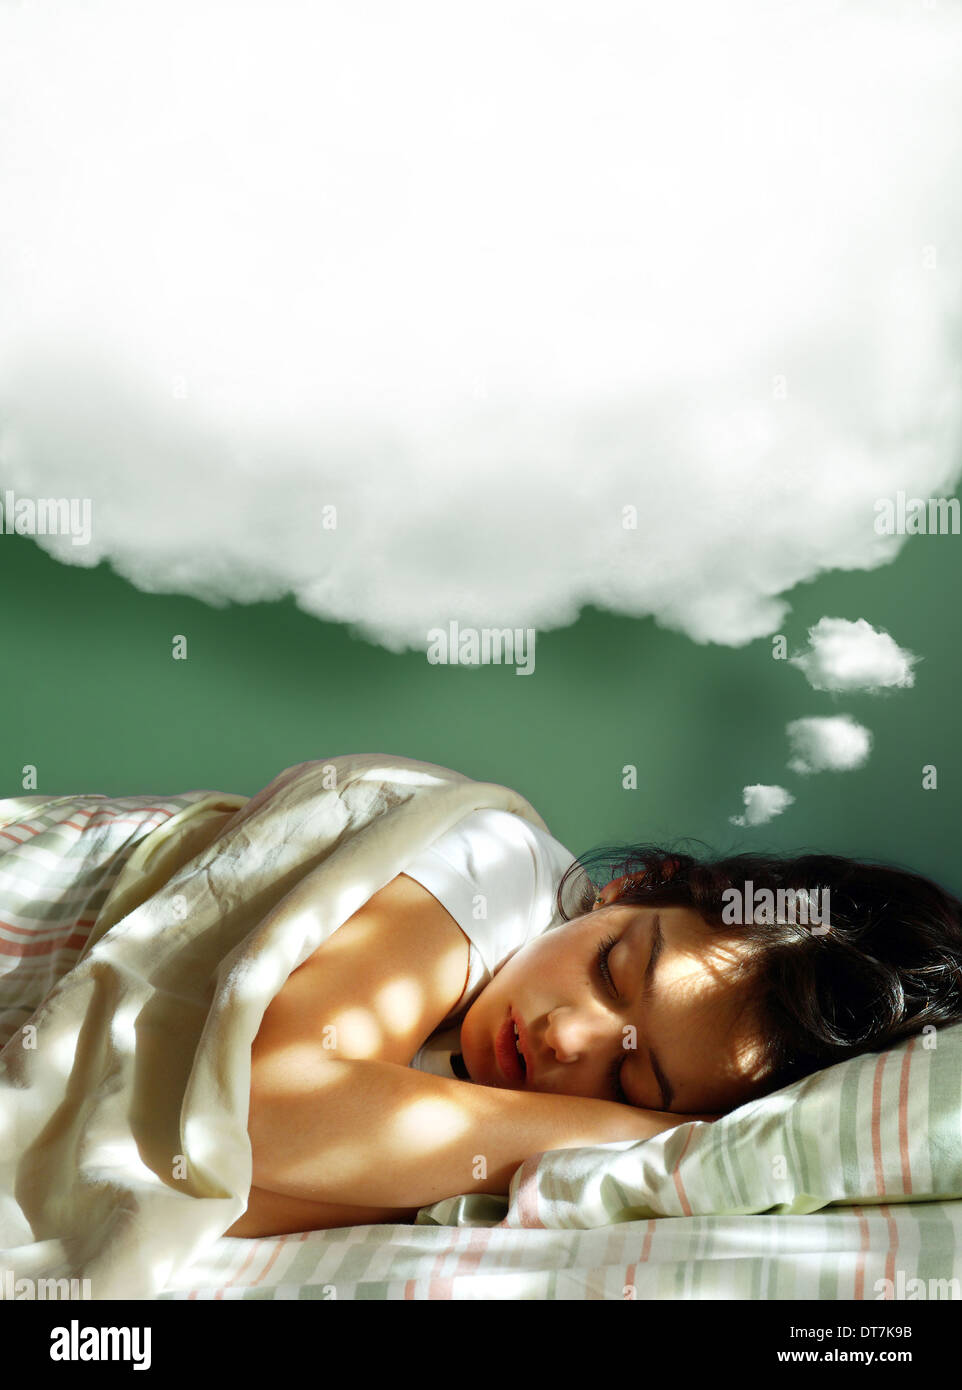 Young Girl Sleeping In Her Bed With A Dreaming Fluffy Balloon Above Head